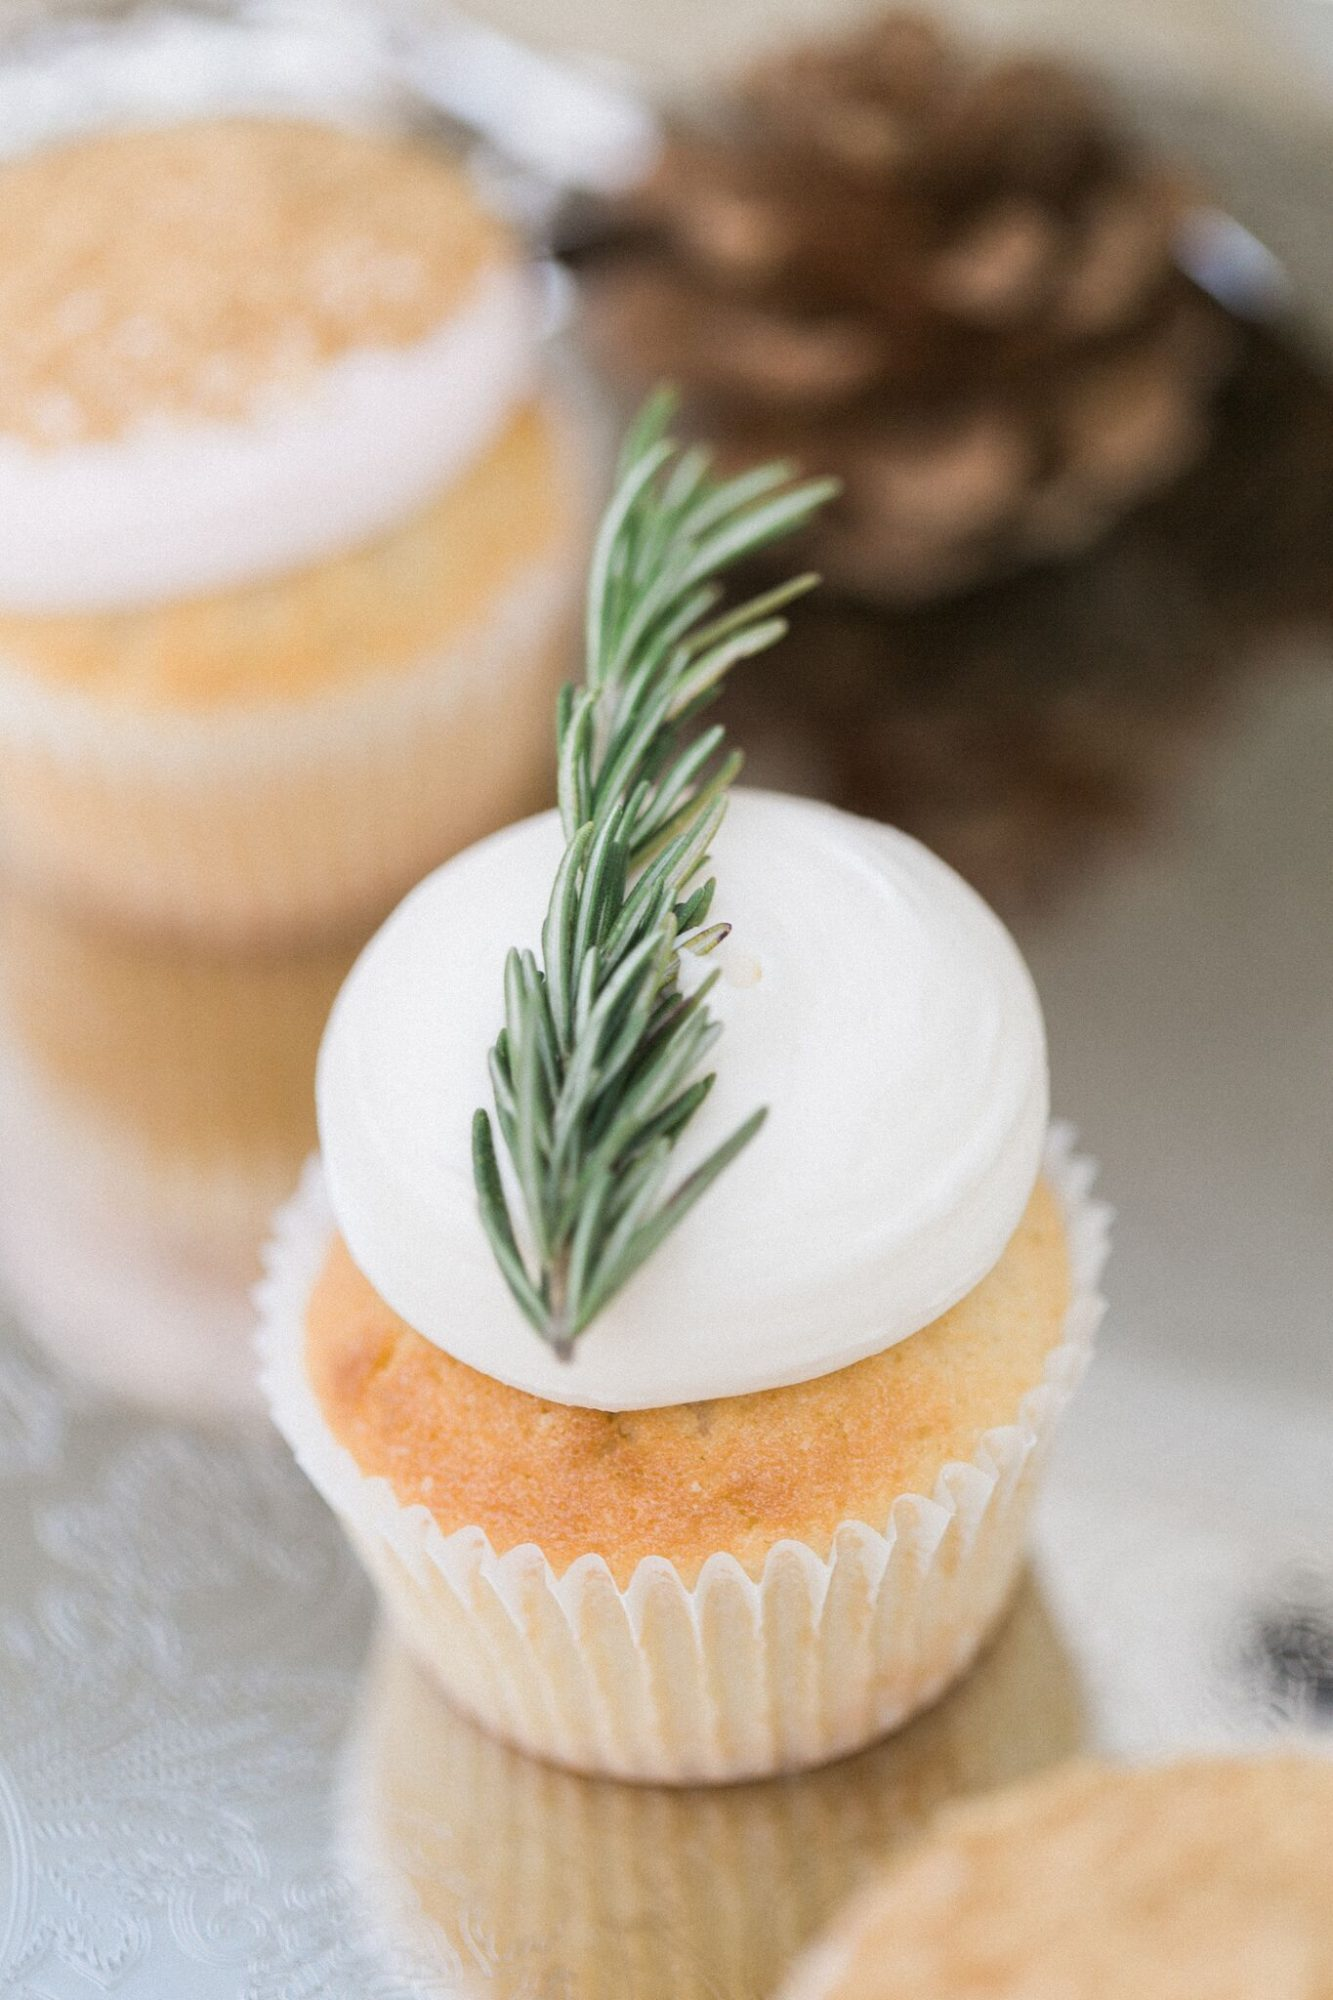 vanilla cupcake with frosting and rosemary sprig